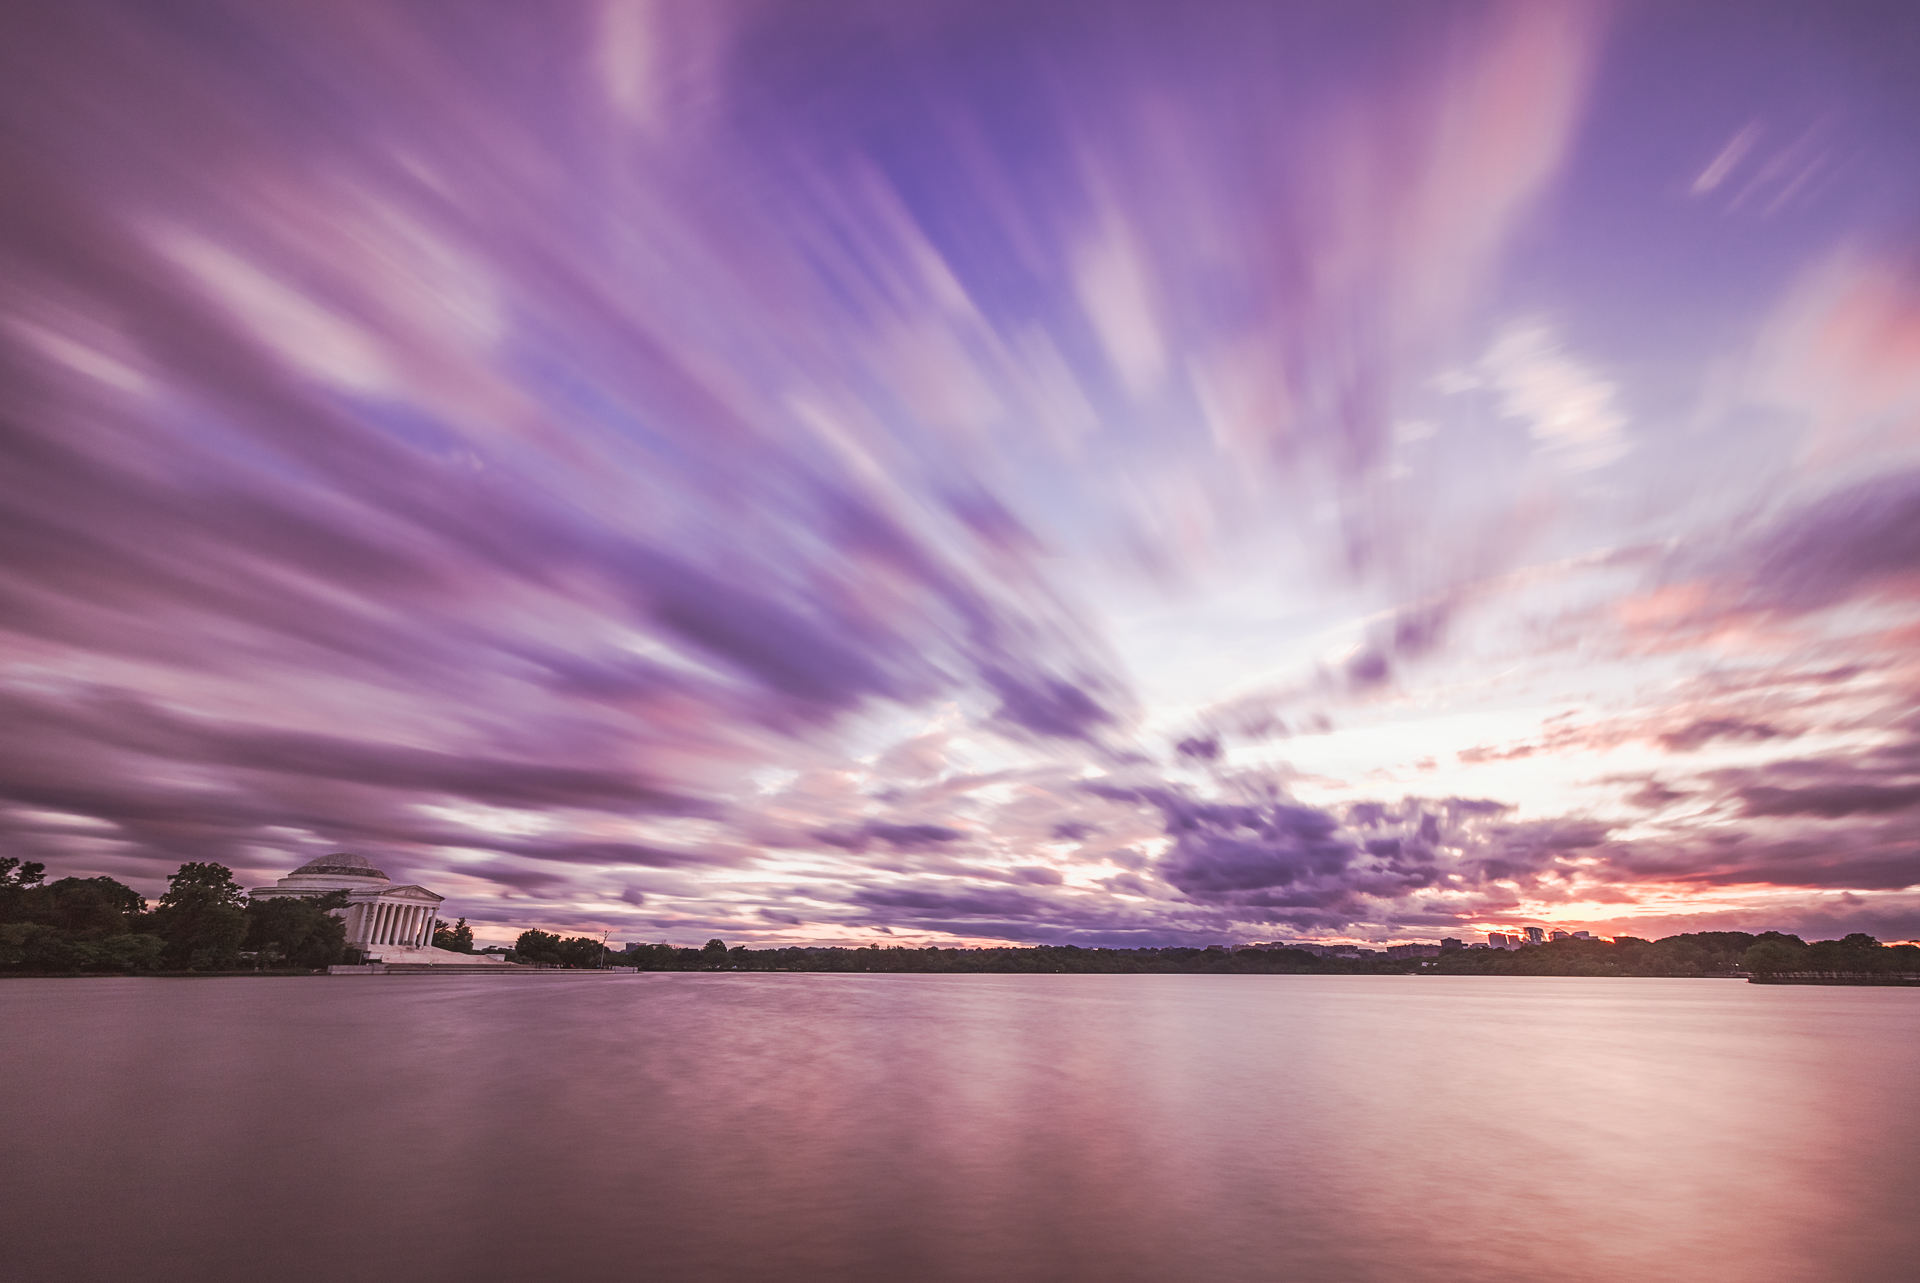 Cloud Passage – Long exposure taken at the Tidal Basin during sunset(Image: Zack Lewkowicz)<p></p>